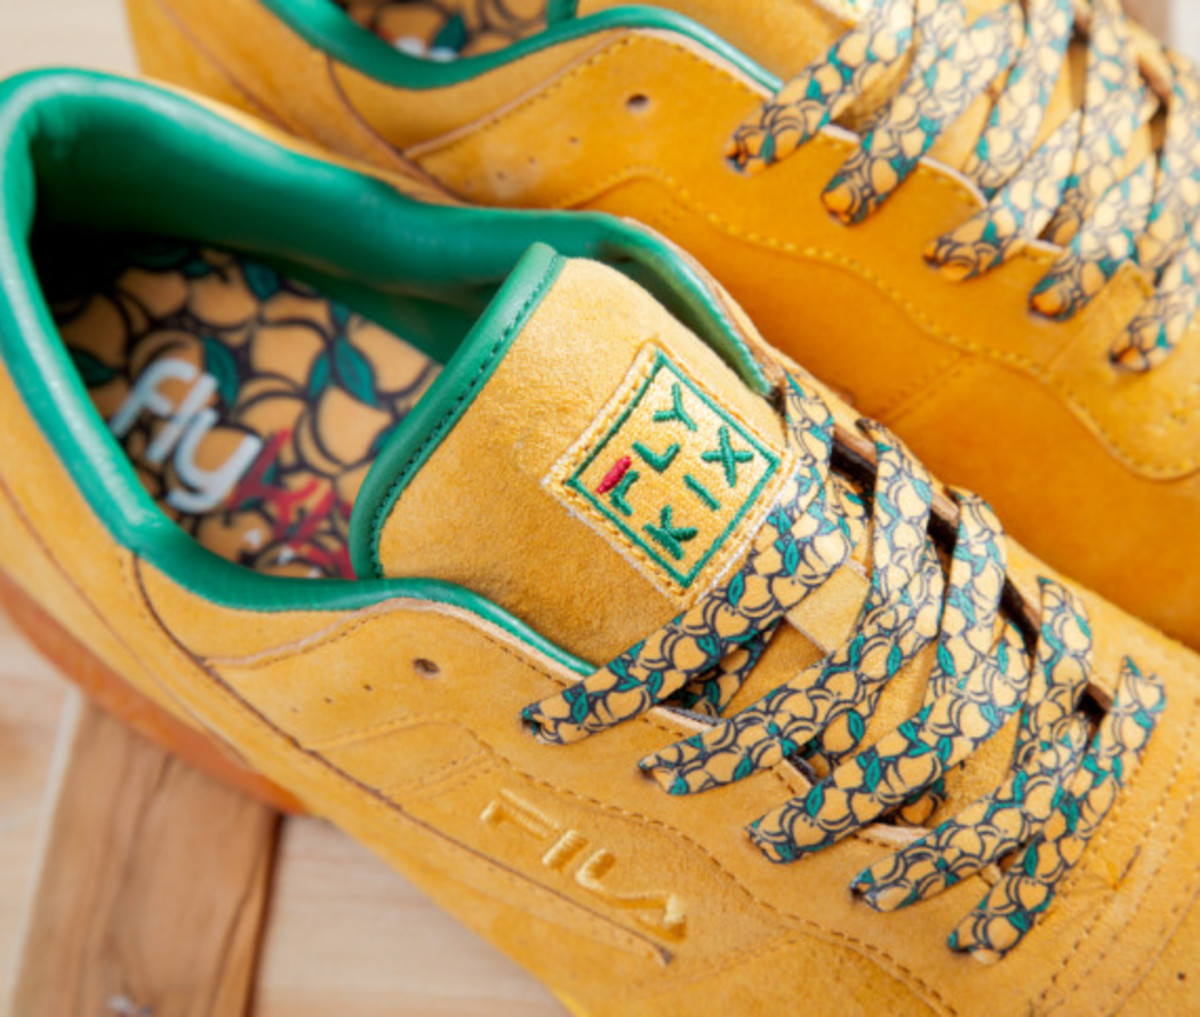 fly-kix-fila-original-fitness-peach-state-10